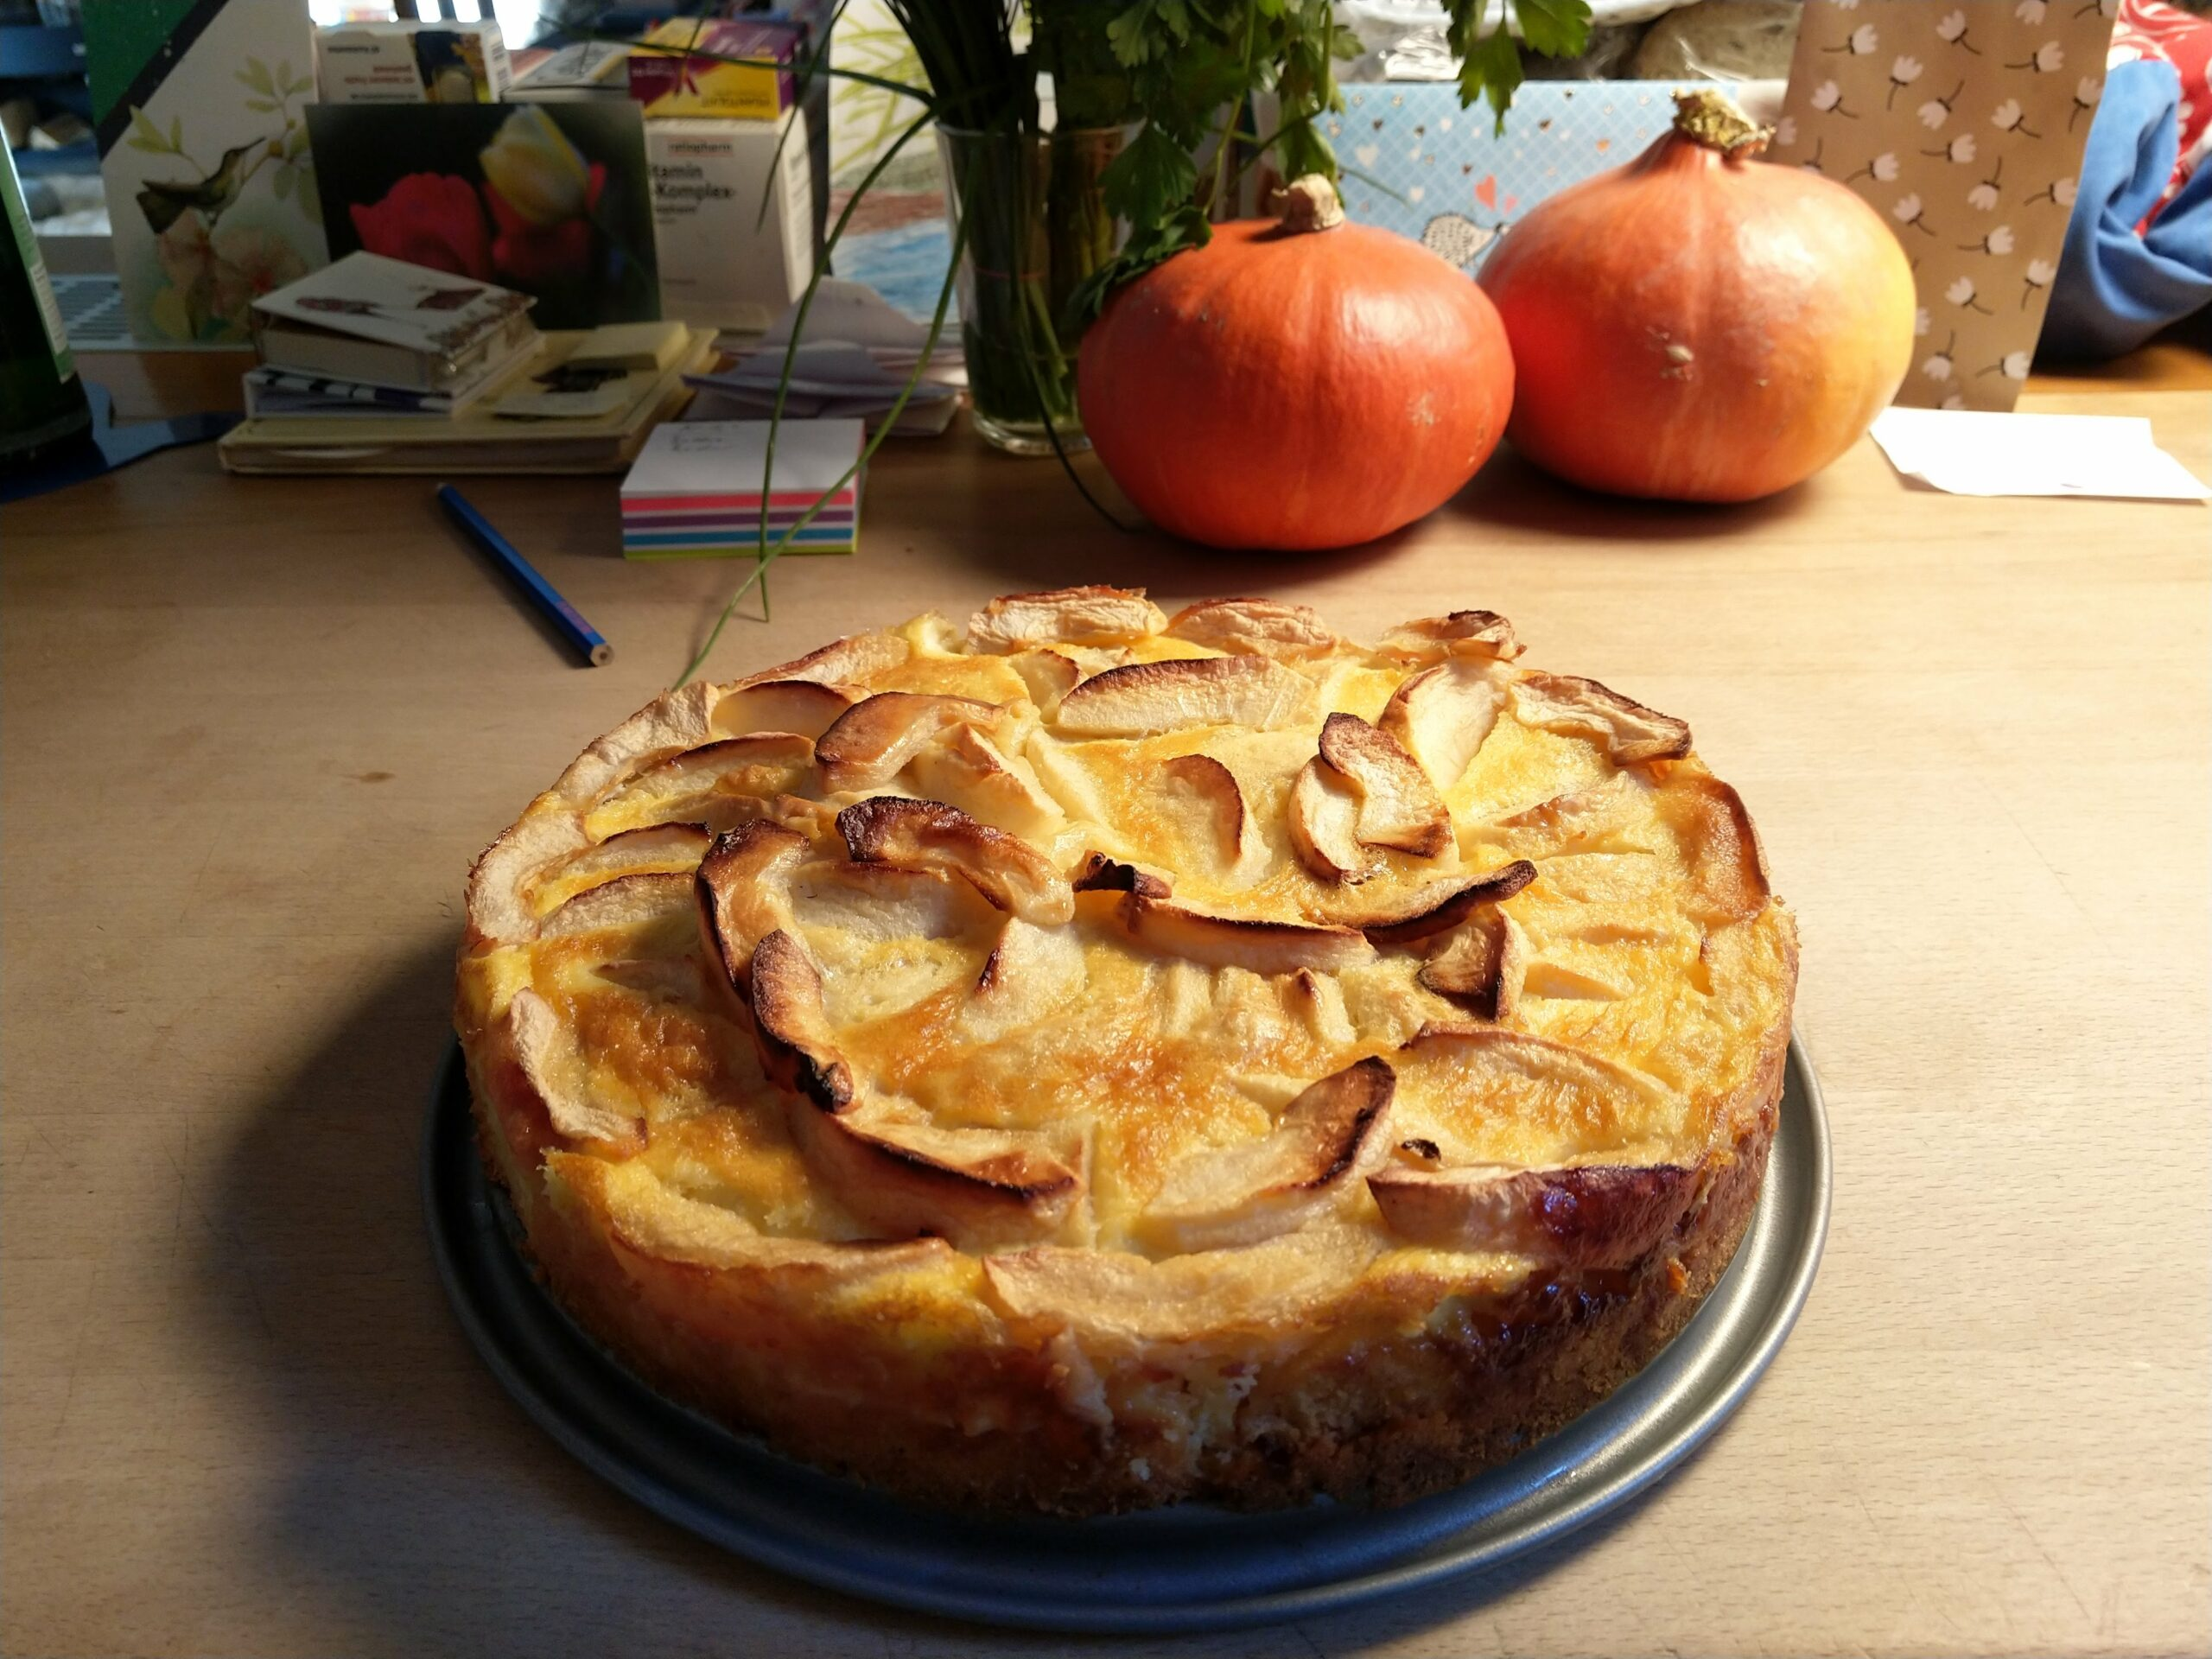 Chapter 5 – A Recipe for French Apple Tart